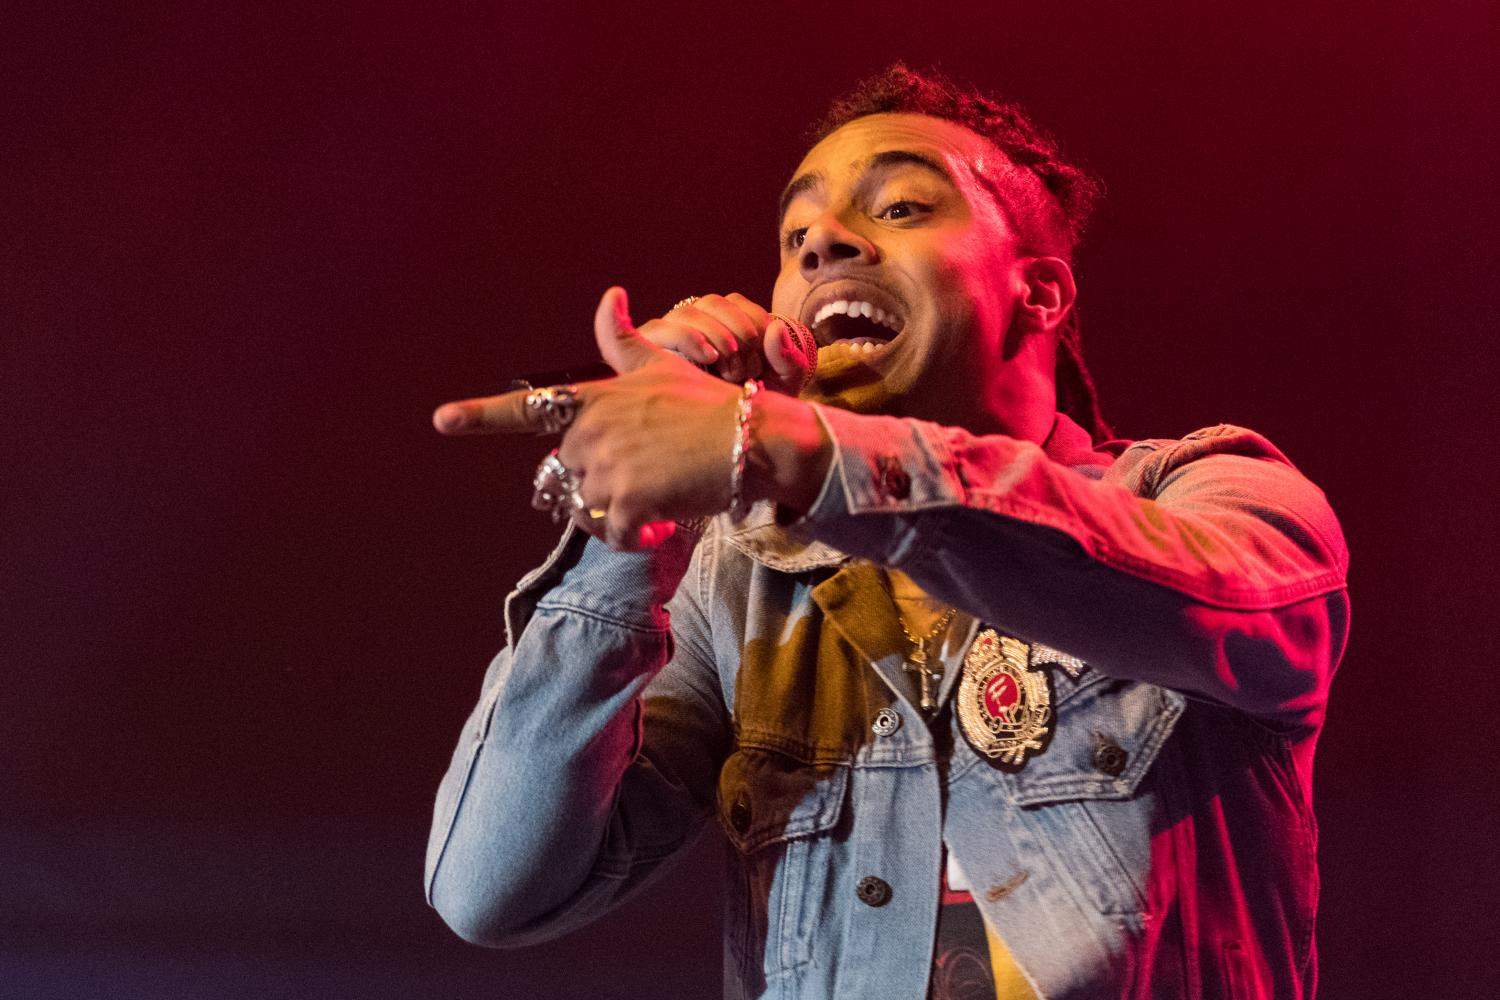 Vic Mensa performs at the Canopy Club Sunday night. This is the first time in over 4 years since Mensa has performed in Urbana, IL.